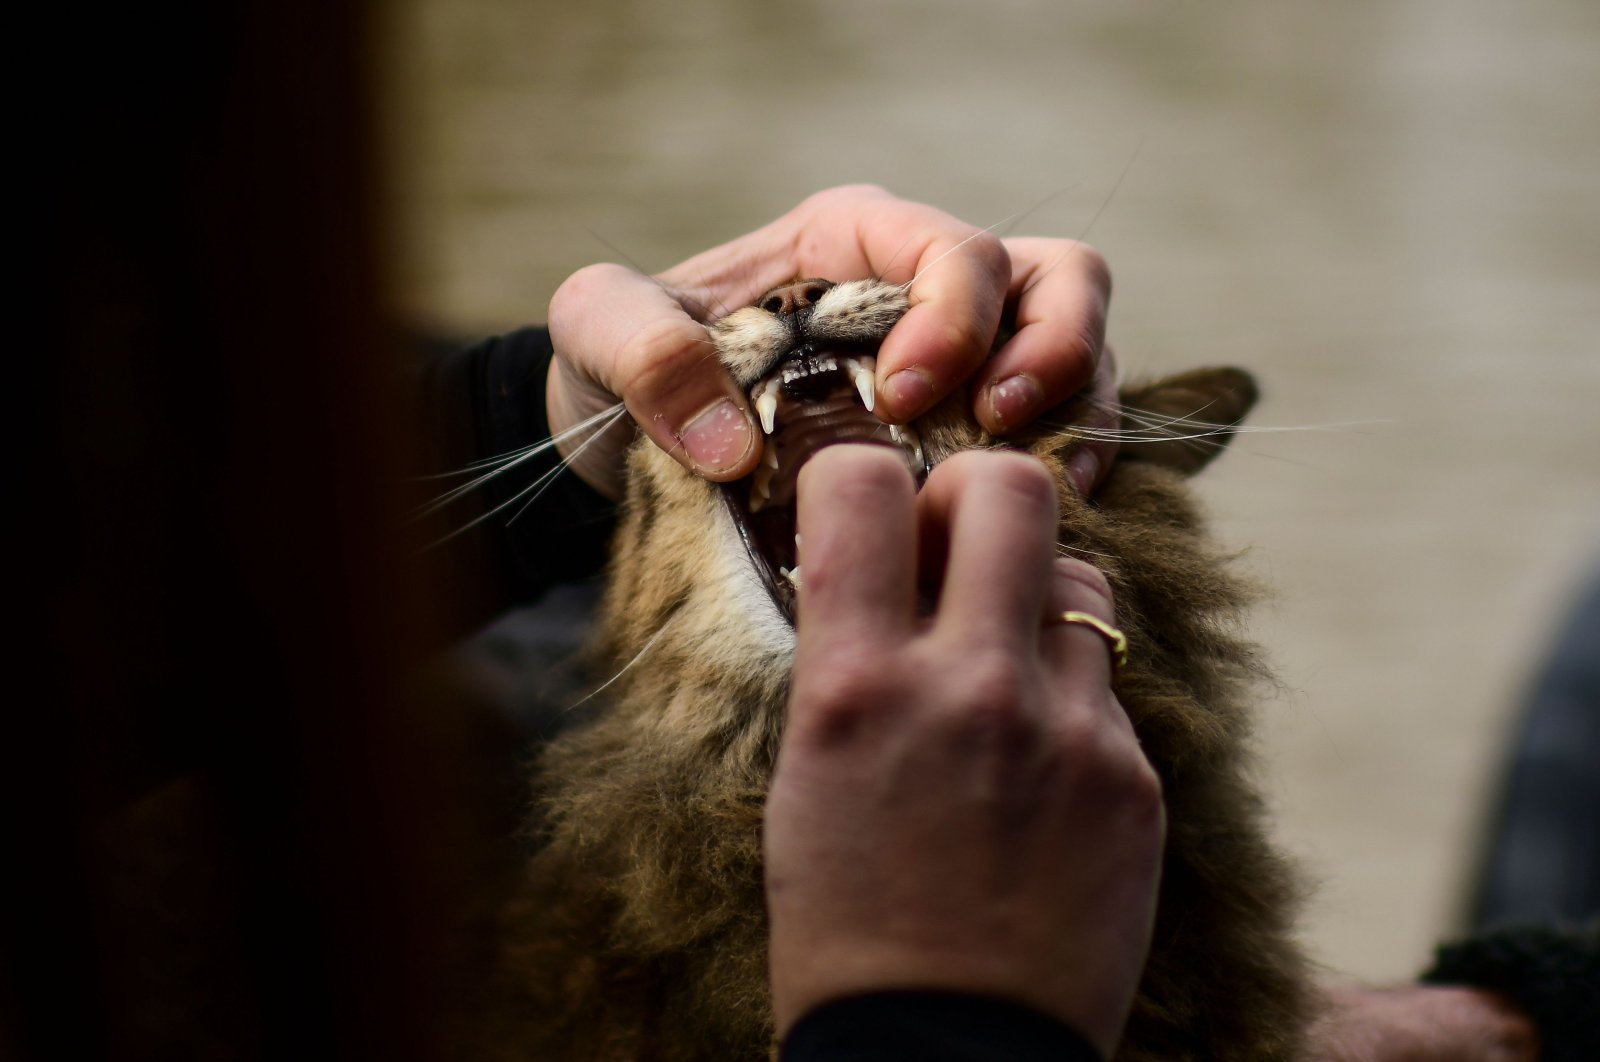 Argentine veterinarian Leila Peluso takes care of a cat on her boat on the Sarmiento River in the Parana Delta, in the municipality of Tigre, Buenos Aires Province, on July 24, 2020, as she provides assistance to pets and farm animals in the area amid the COVID-19 novel coronavirus pandemic. (AFP Photo)